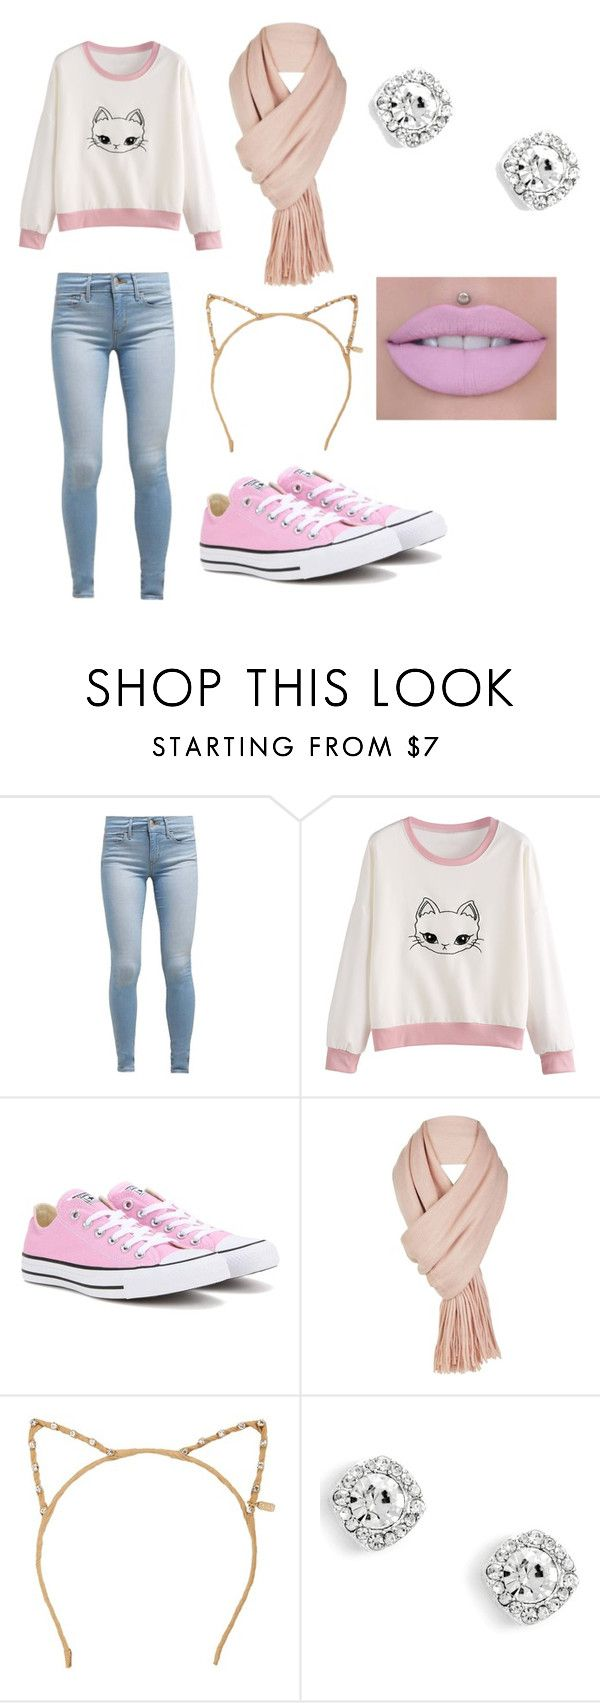 """""""Getting ready for Christmas """" by galaxygirl78 on Polyvore featuring beauty, Levi's, Converse, Free People and Tasha"""